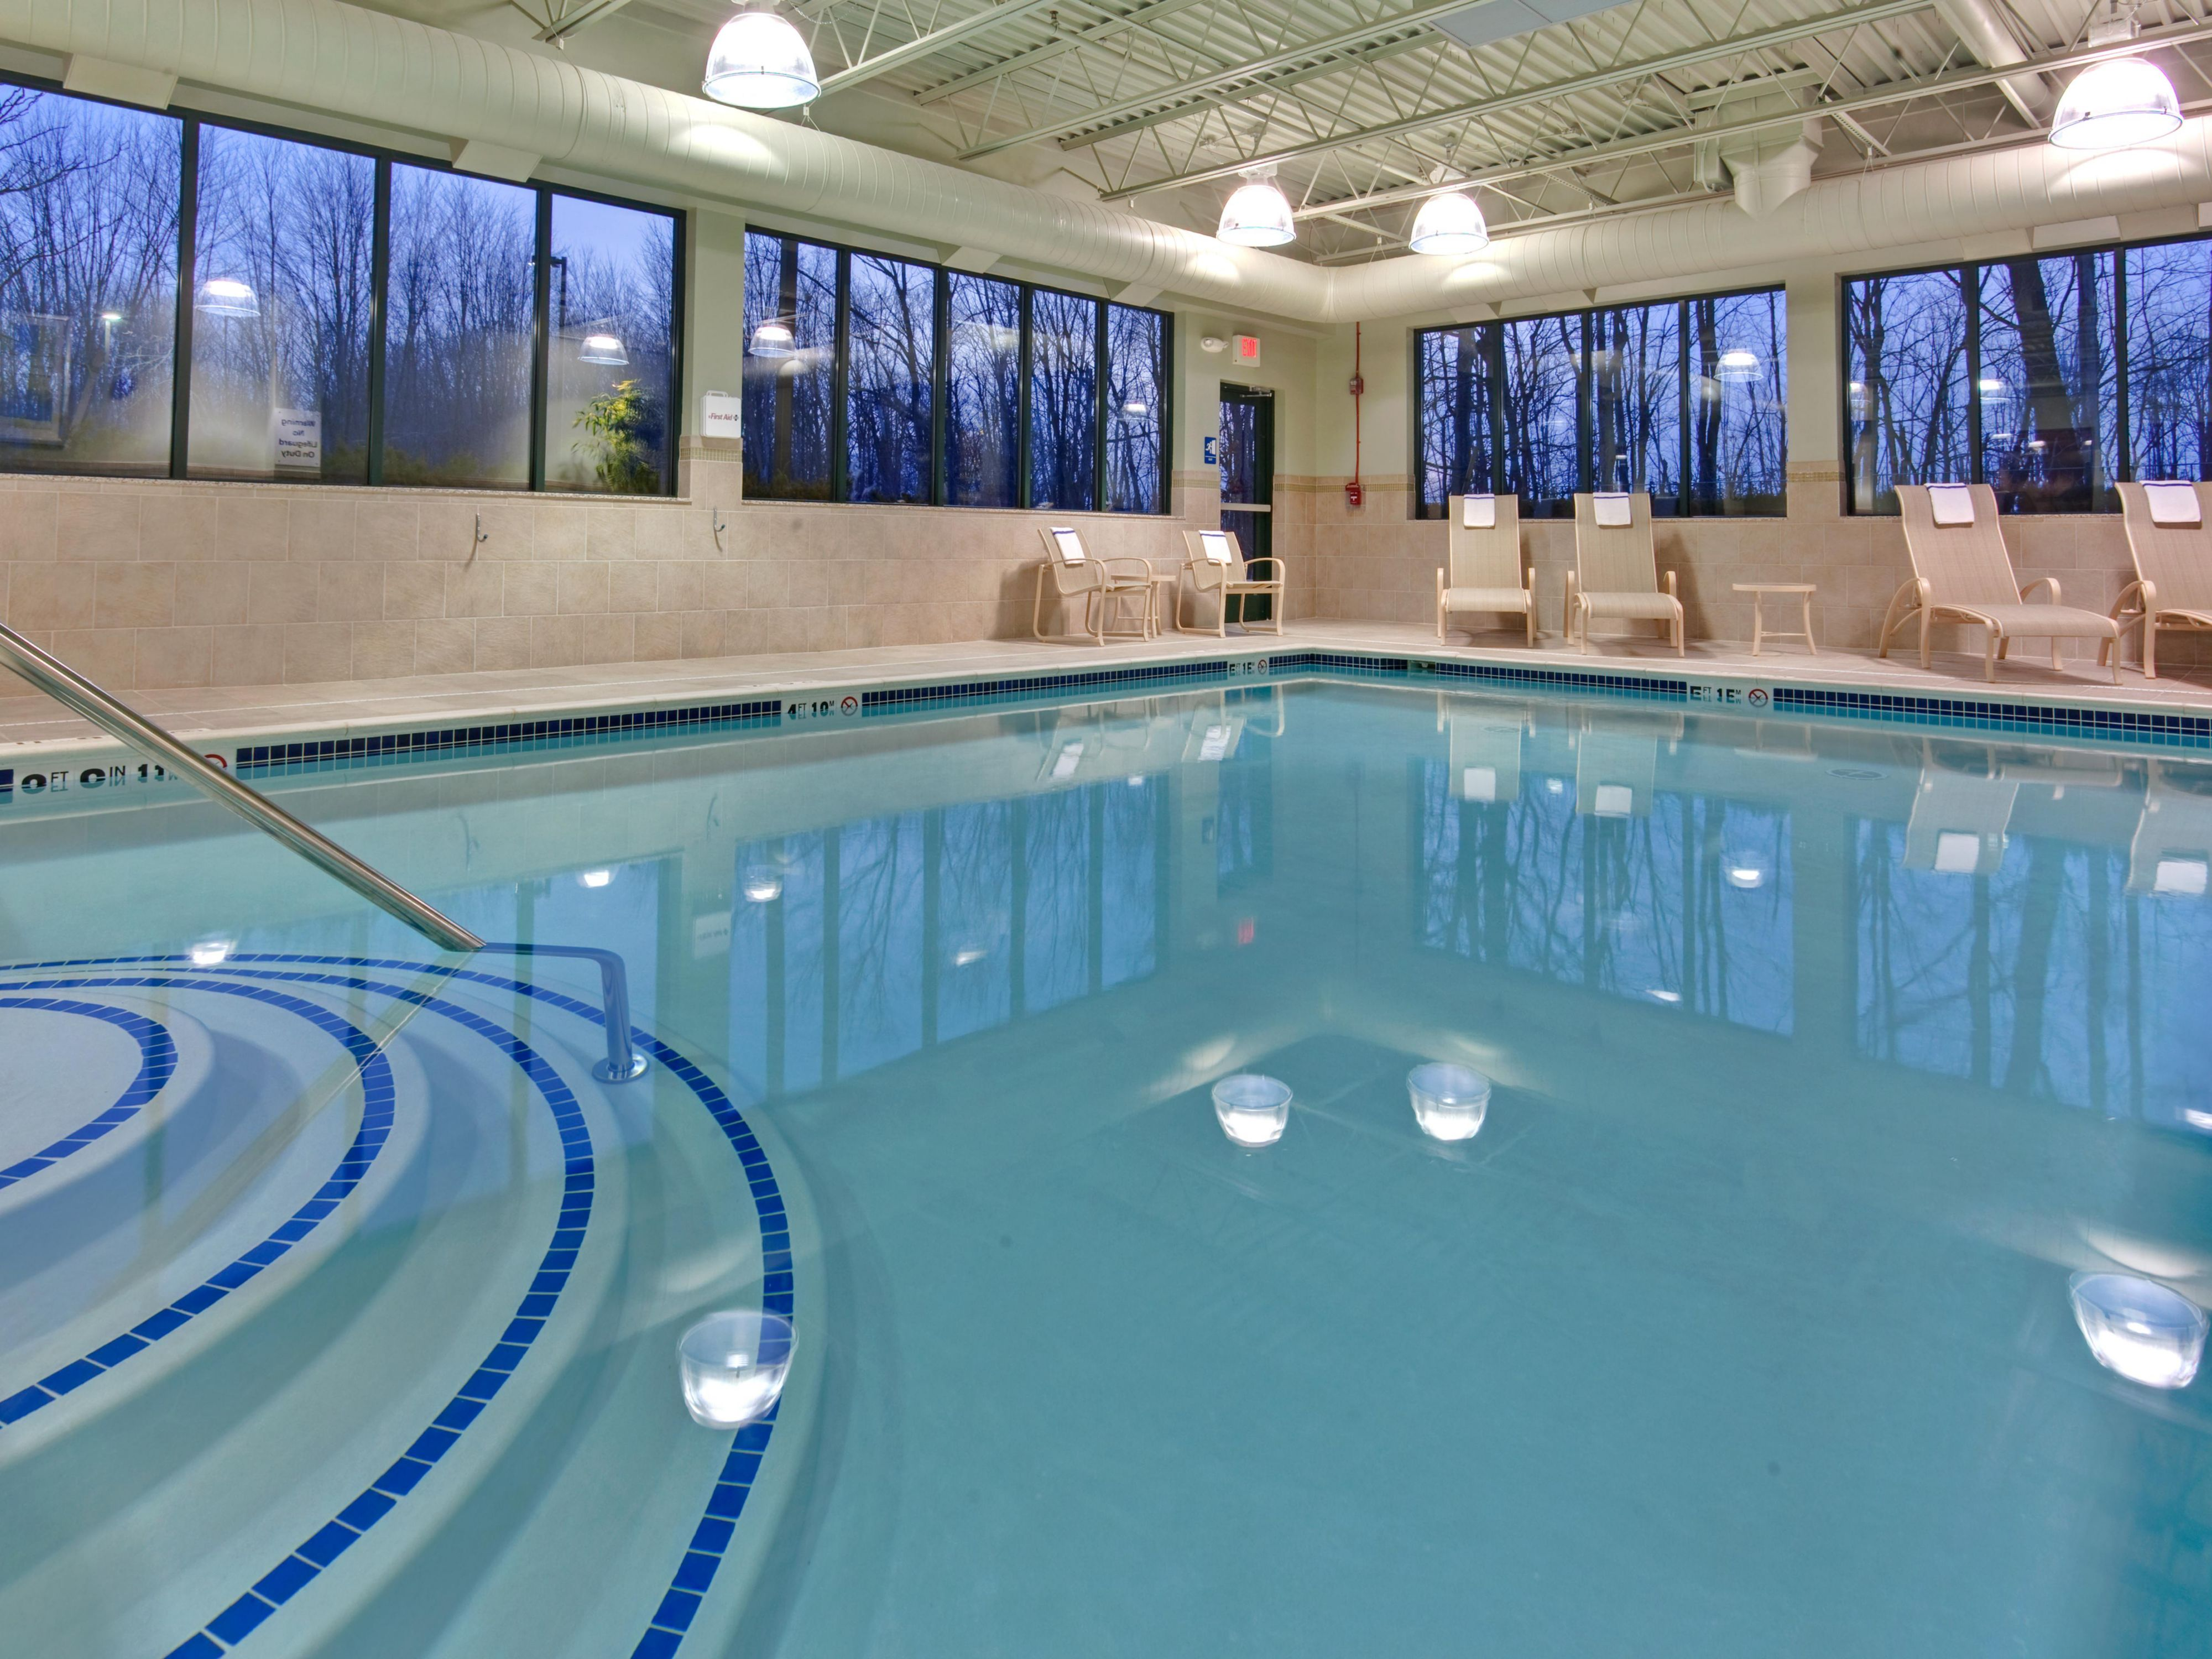 Perfect get away indoor swiming area with a great view of nature